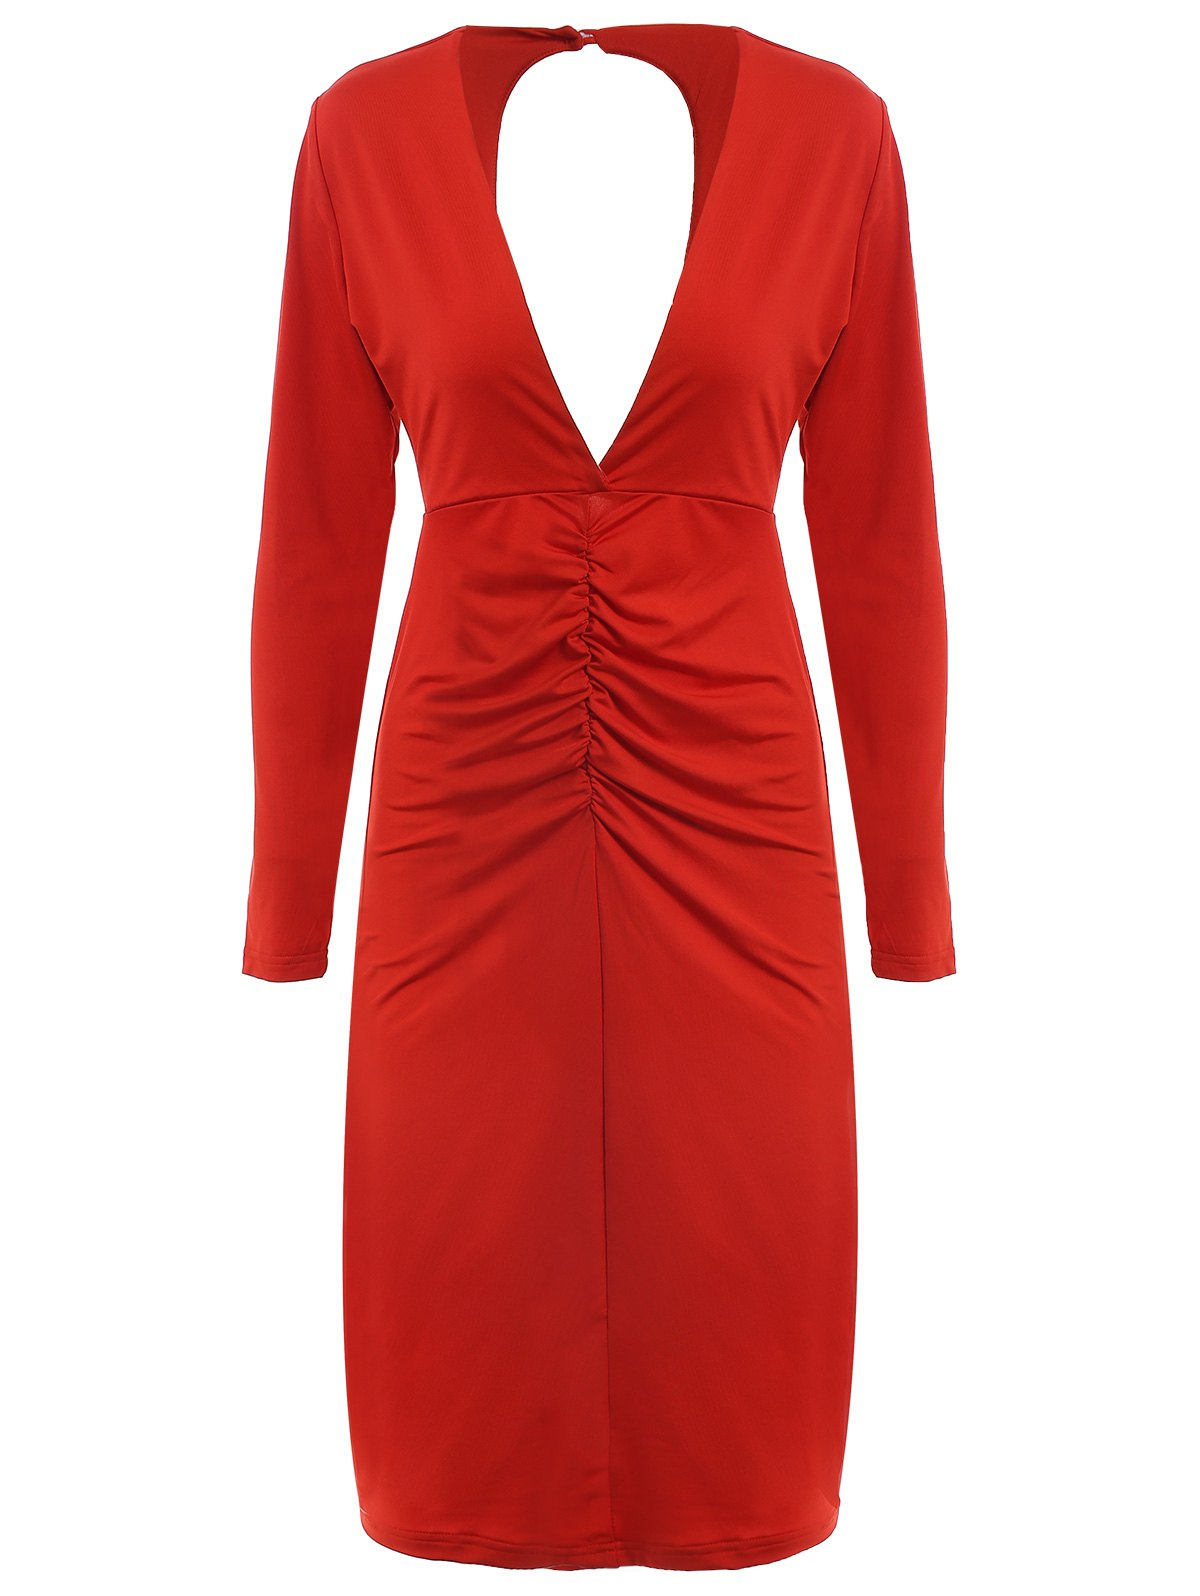 Long Sleeve Plunging Neck Cut Out Pure Color Dress For Women - RED S